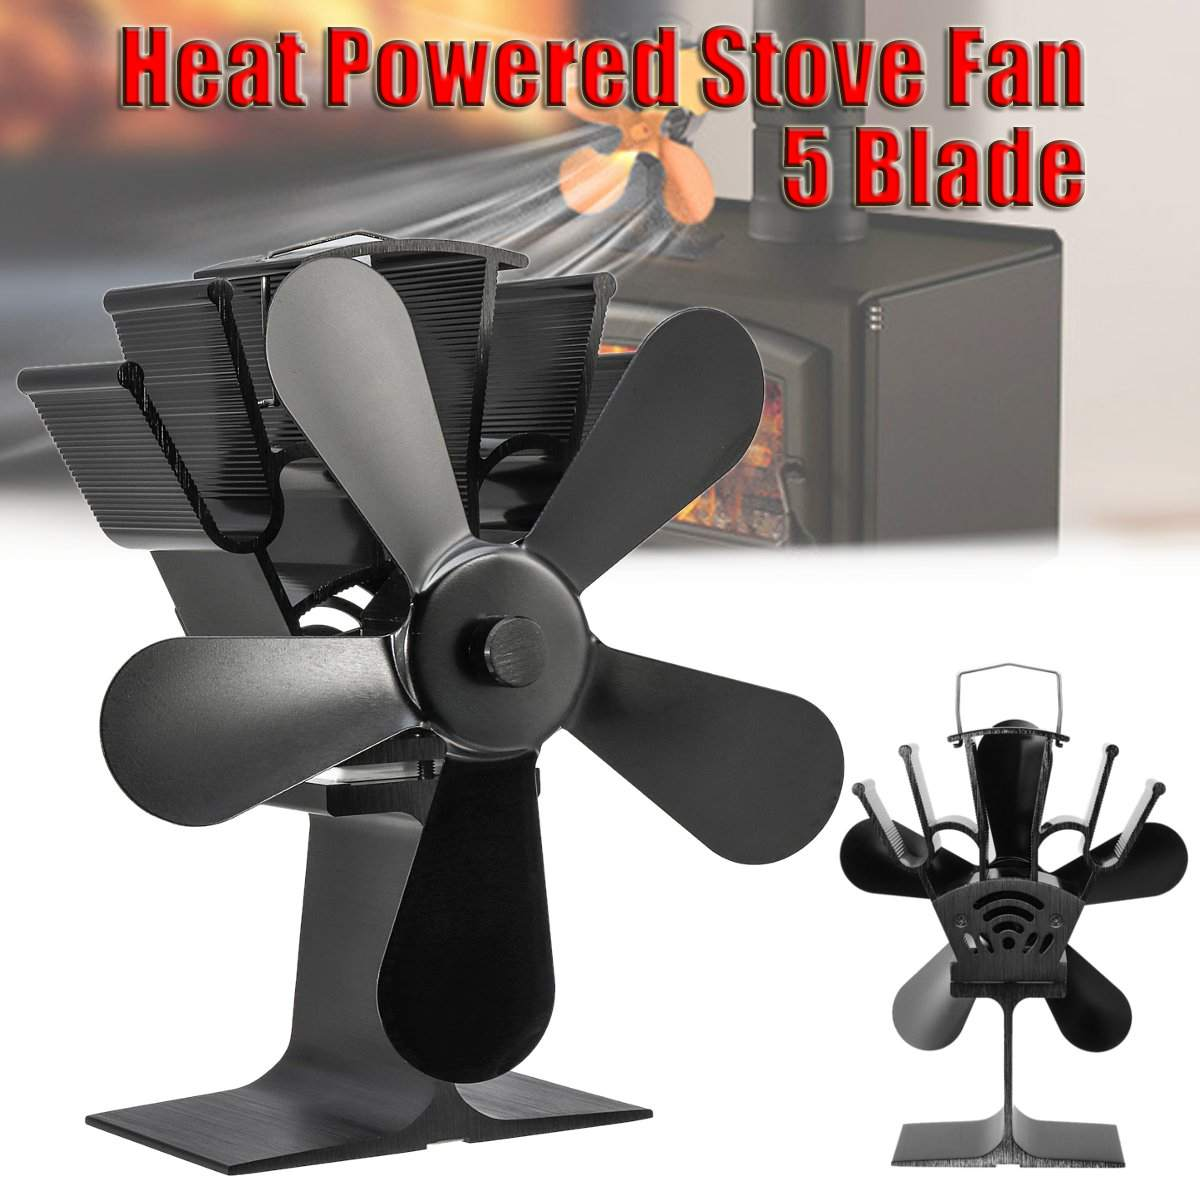 Black Heat Self-Powered 5 Blades Stove Fan Wood Log Quiet Burner Fireplace Eco Friendly Fan Home Efficient Heat DistributionBlack Heat Self-Powered 5 Blades Stove Fan Wood Log Quiet Burner Fireplace Eco Friendly Fan Home Efficient Heat Distribution